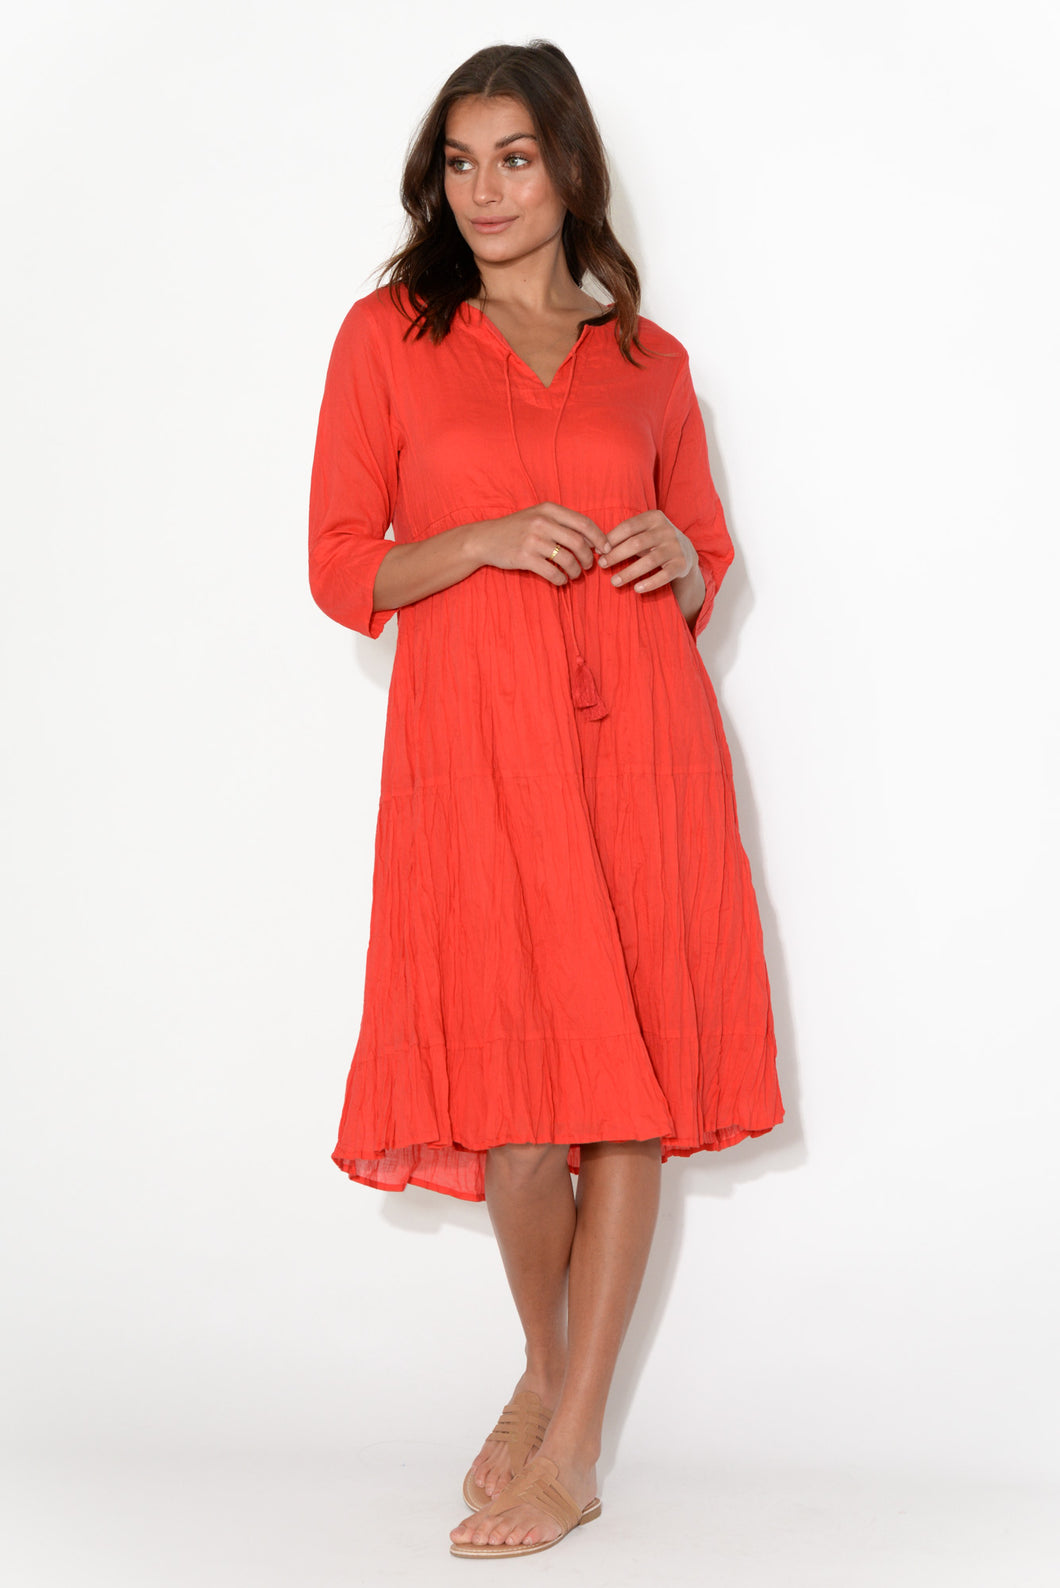 Milana Red Crinkle Cotton Dress